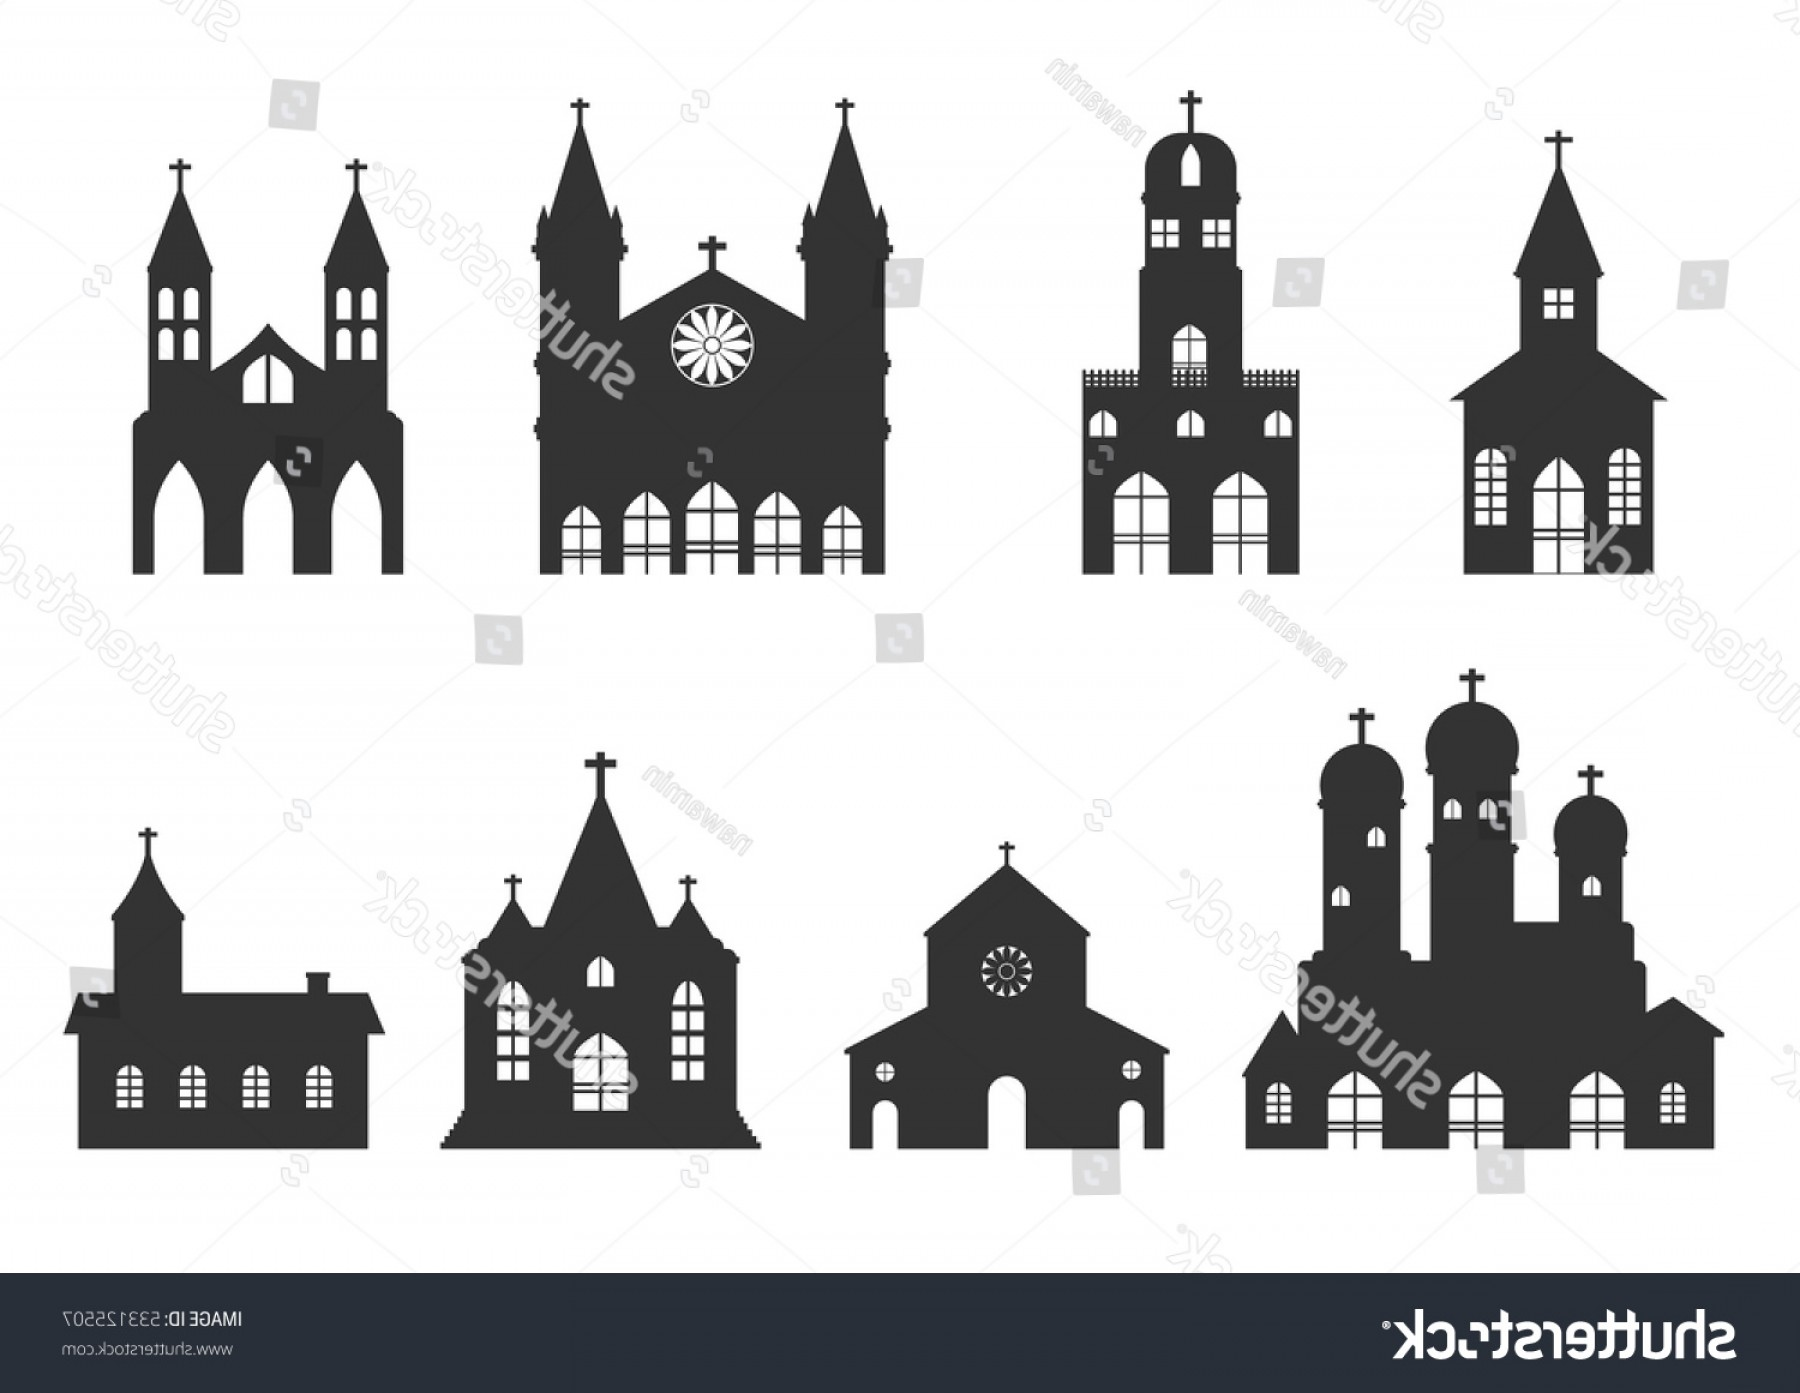 Church Silhouette Vector: Church Building Icon Vector Christian Religion